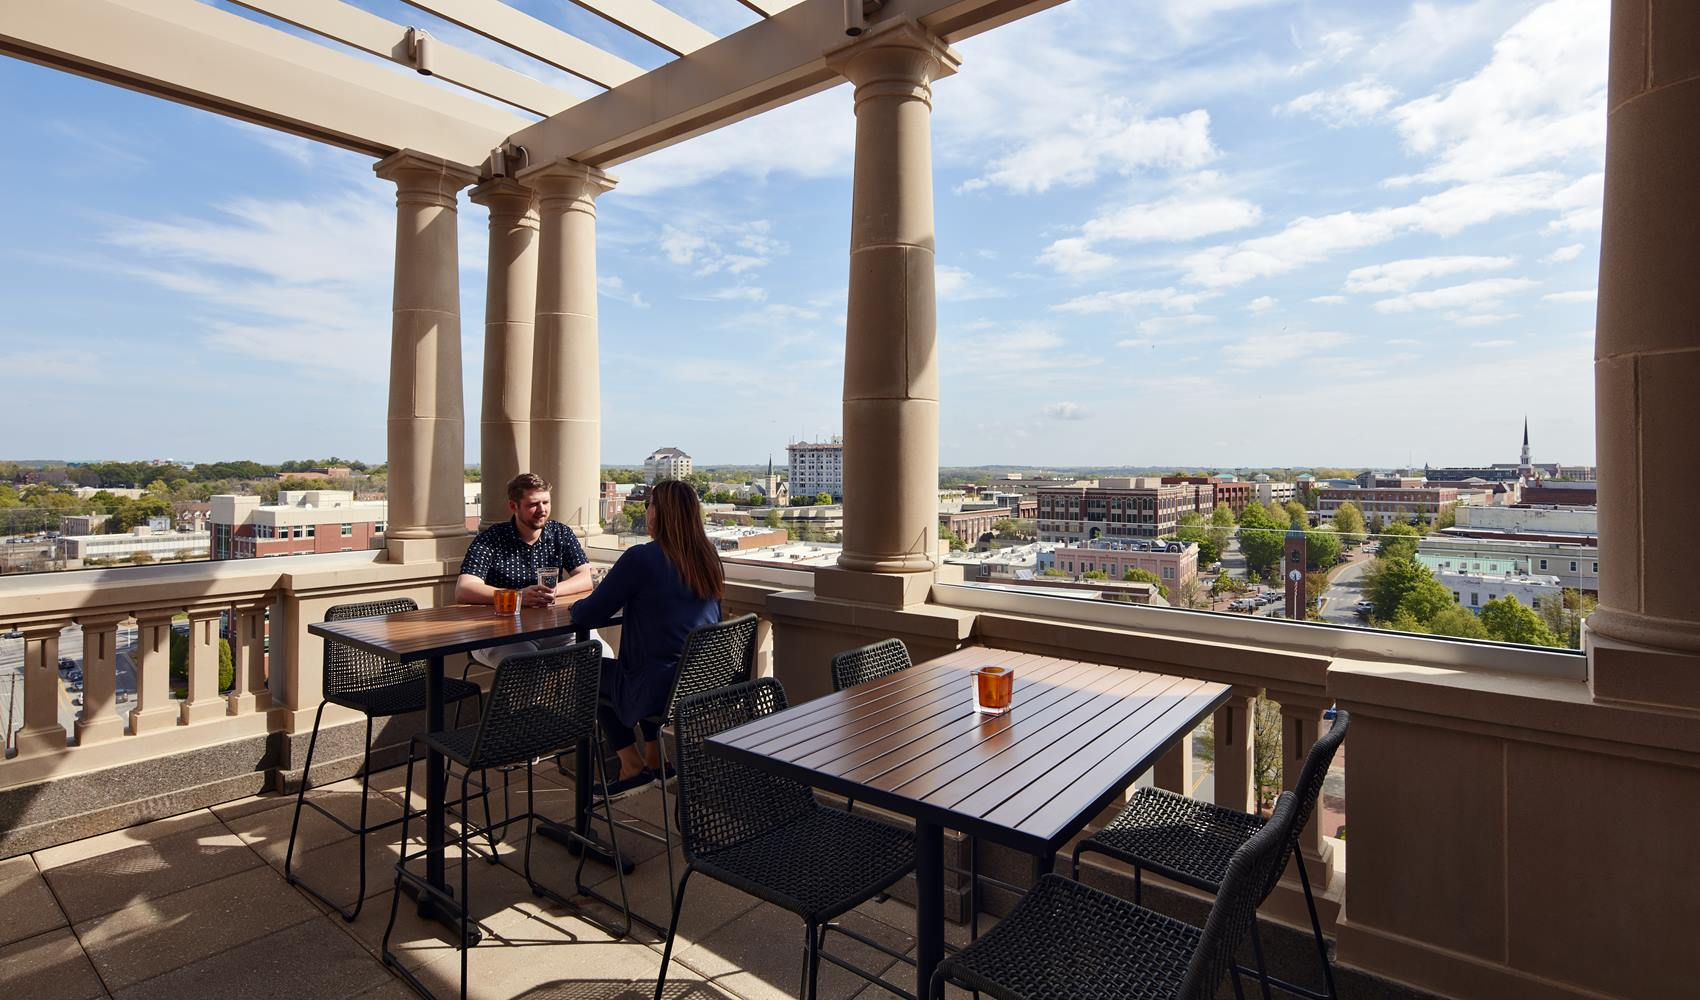 A C Hotel Spartanburg Rooftop Dining